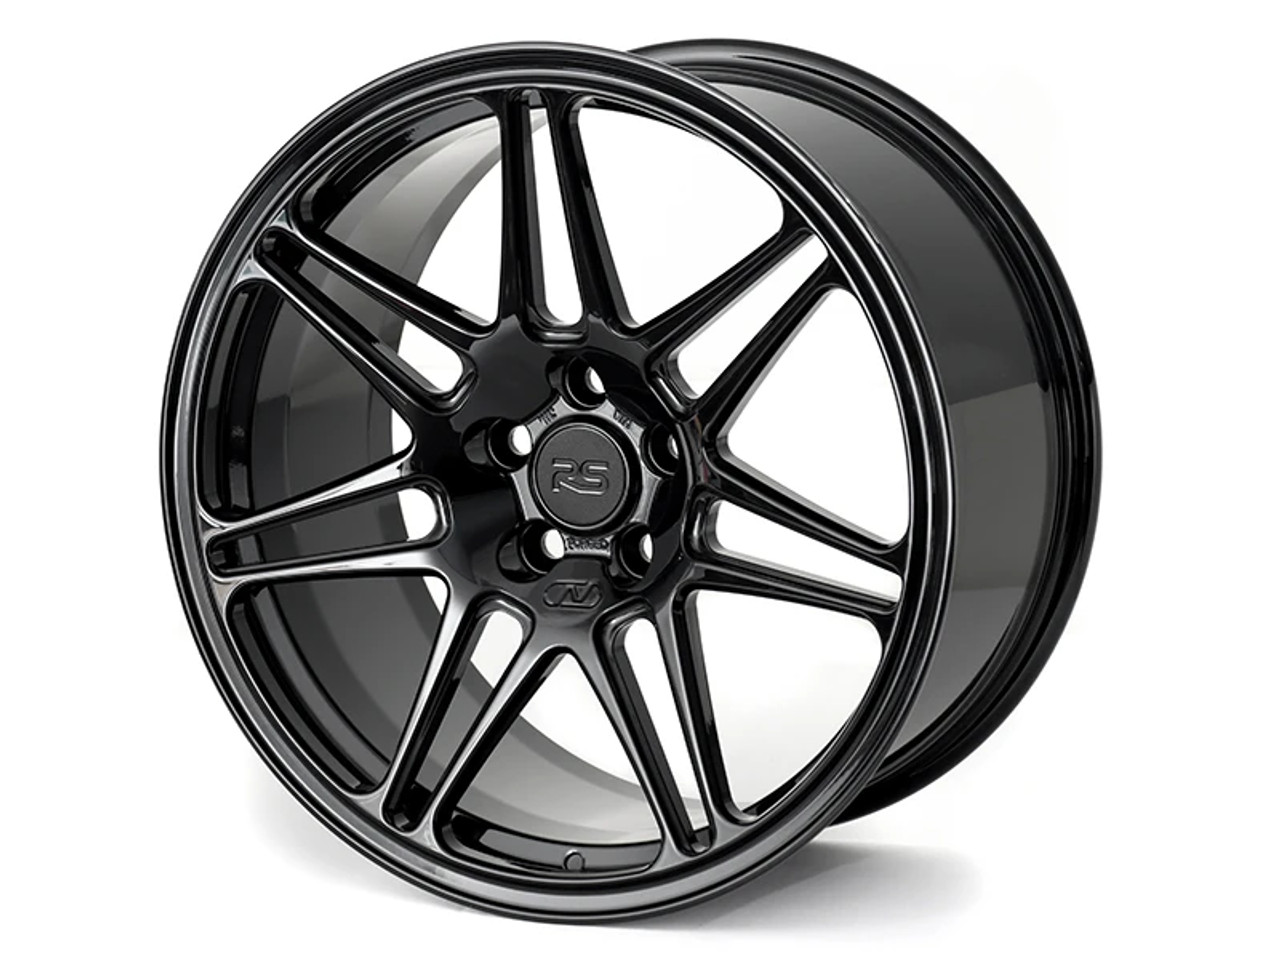 NEUSPEED RSf72  Lightweight Forge Wheel (VW/Audi Fitment)